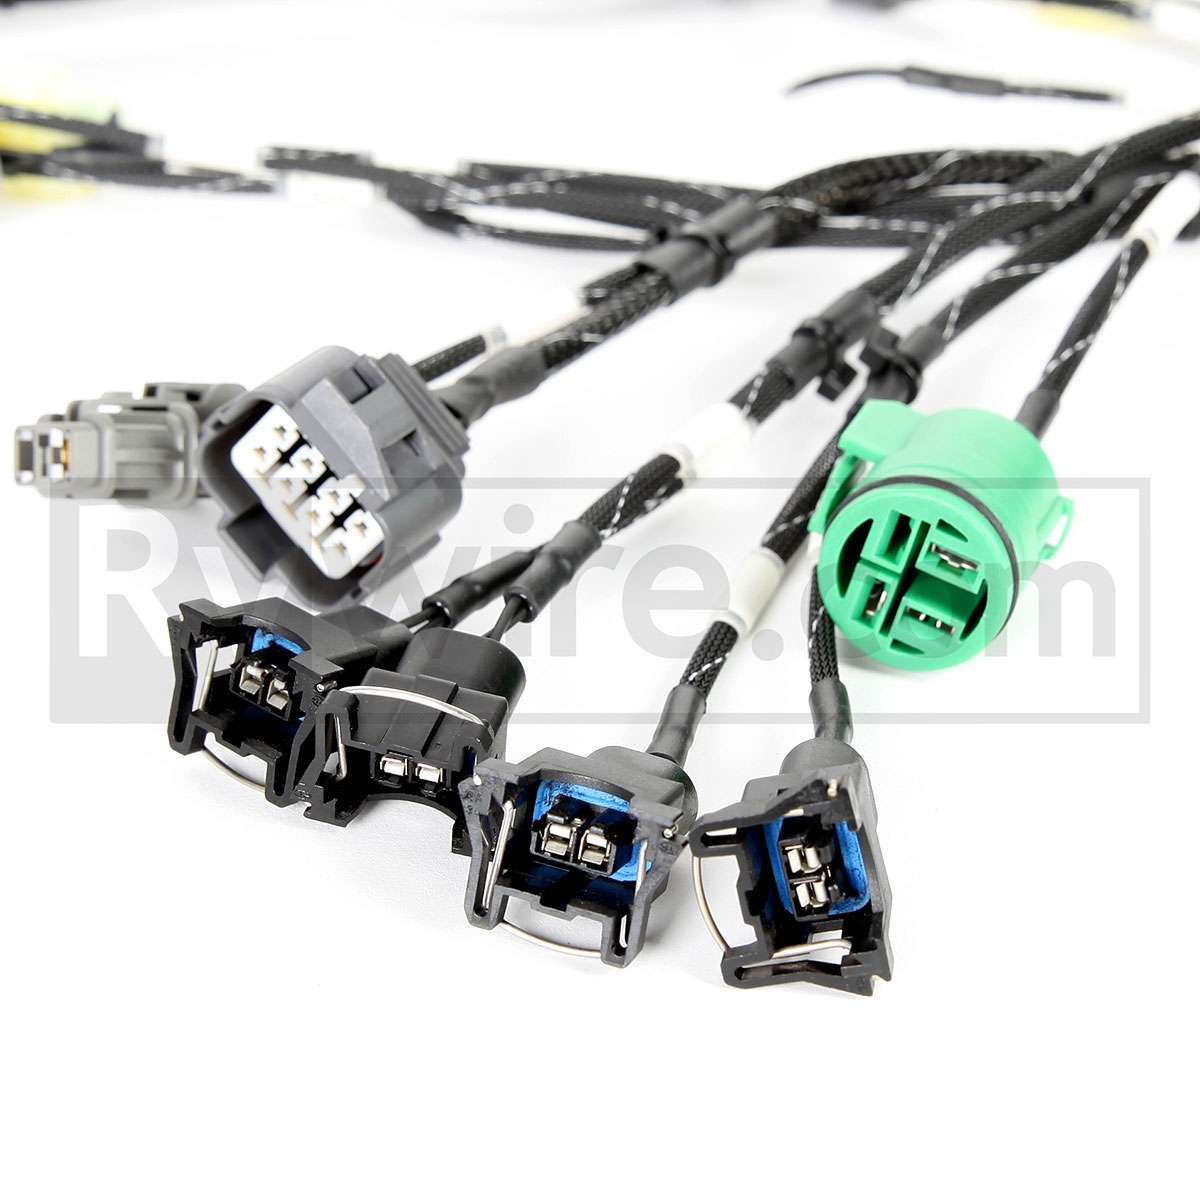 B1 Base 4?1403534211 rywire com budget d & b series tucked engine harness B18B1 Engine at webbmarketing.co